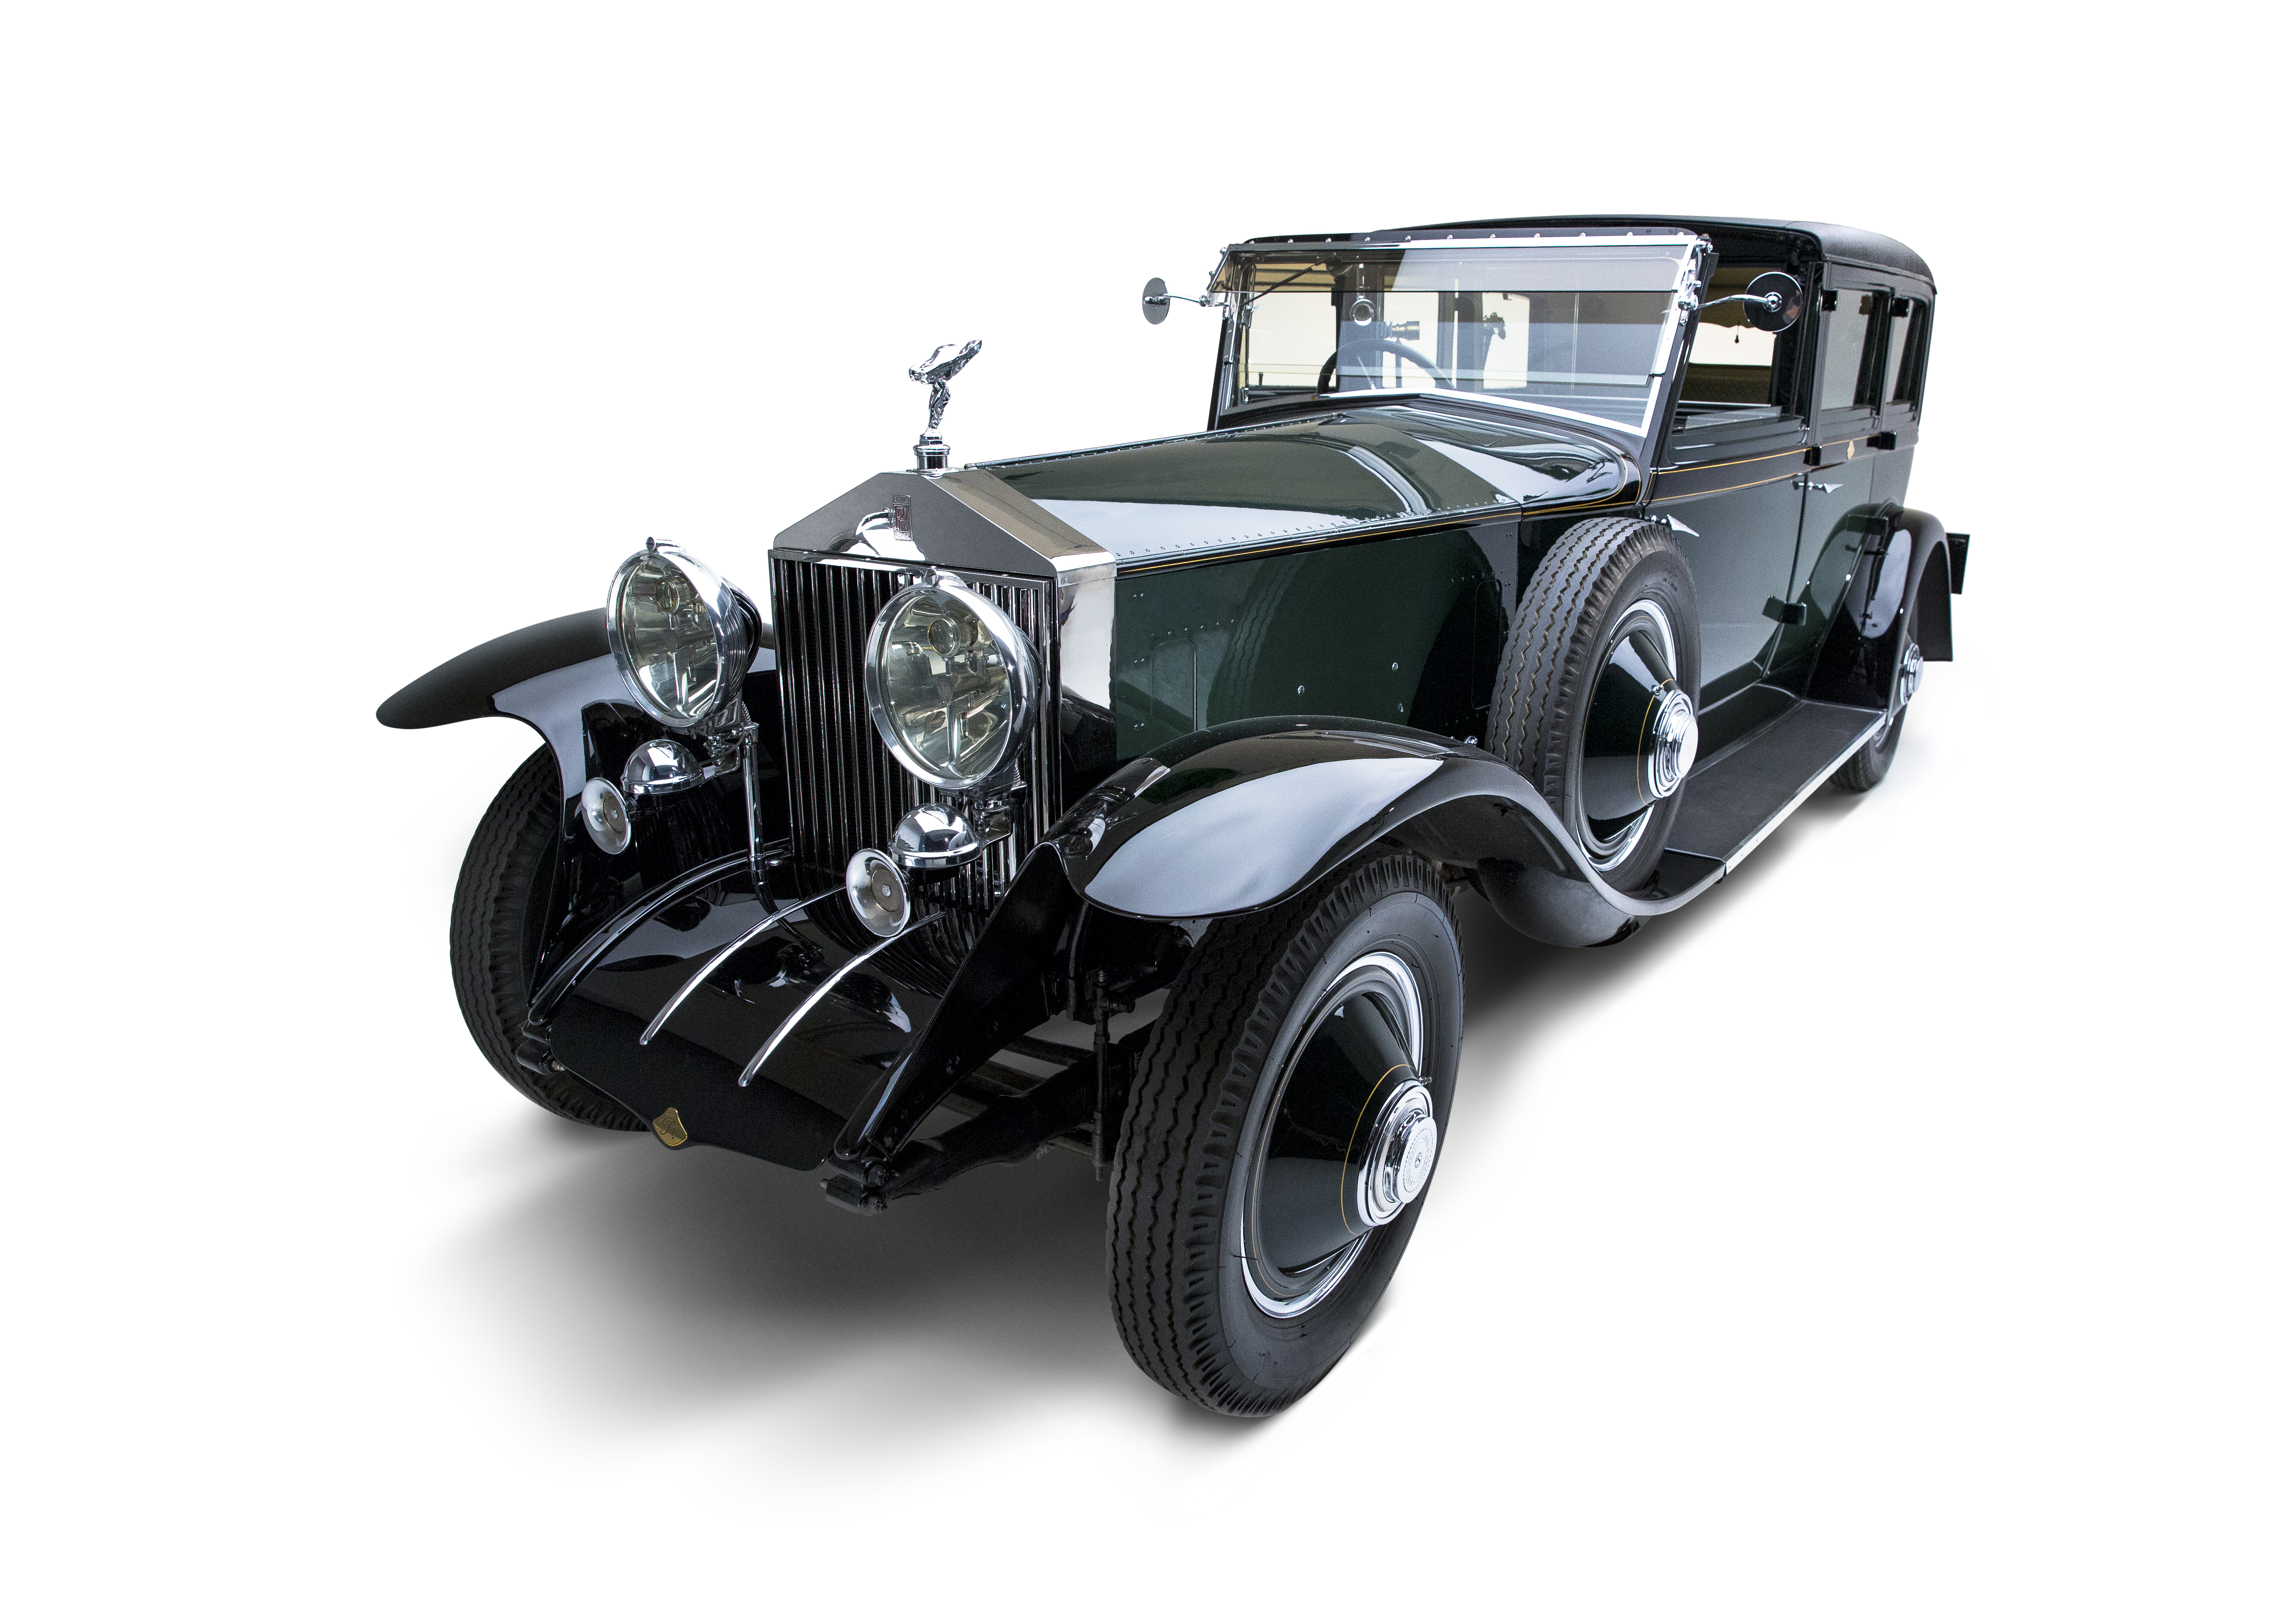 Free photo: Old Car - old, oldtimer, ride - Creative Commons - CC0 ...